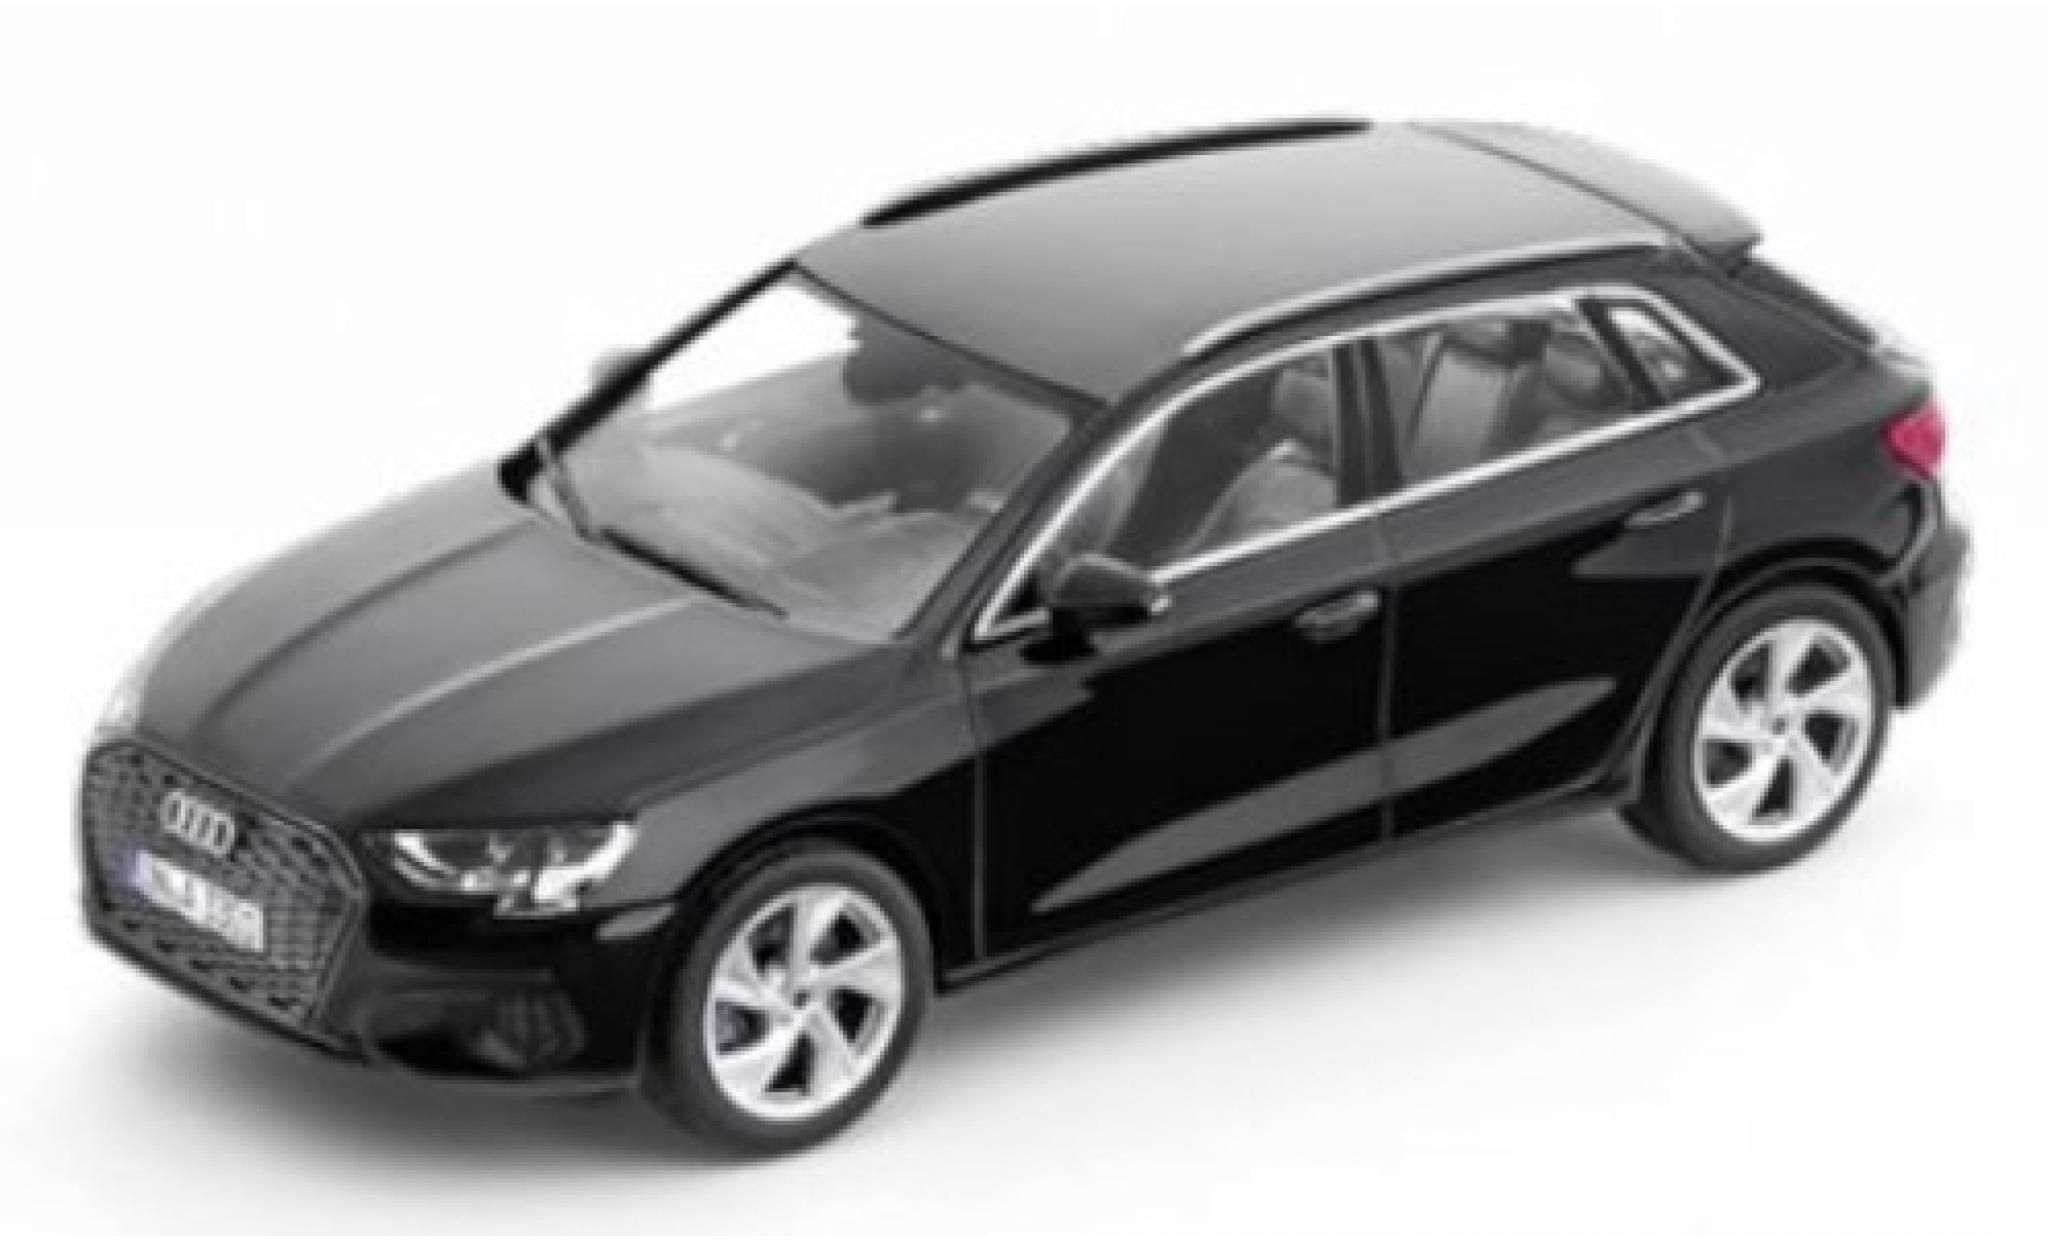 Audi A3 1/43 I iScale Sportback (8Y) noire 2020